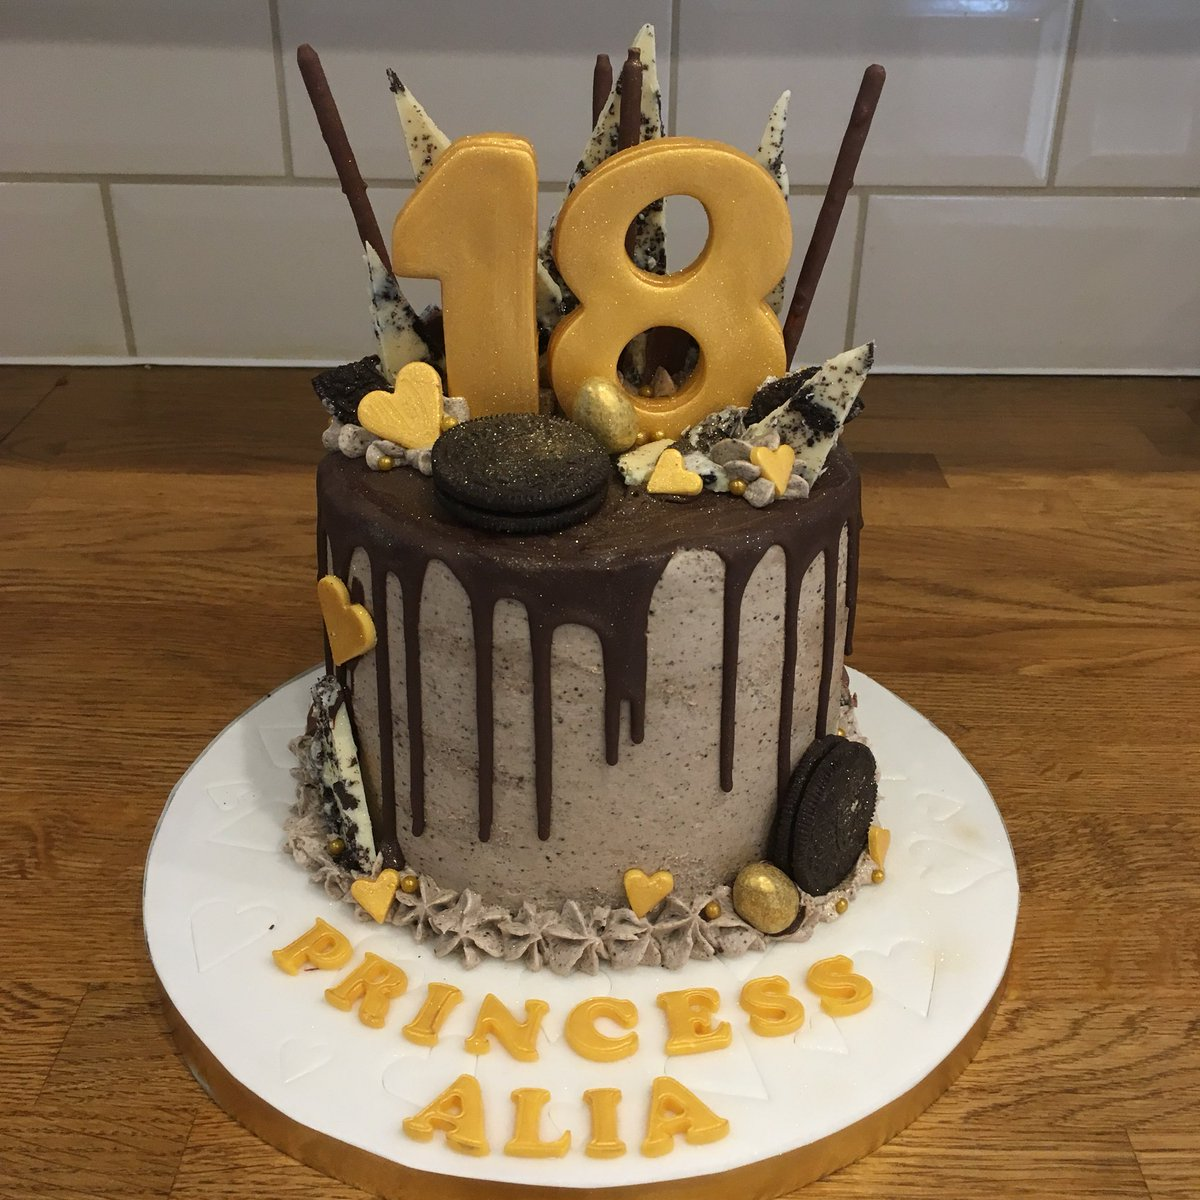 Jades Cakes on Twitter Oreo drip layer cake 18th birthday cake